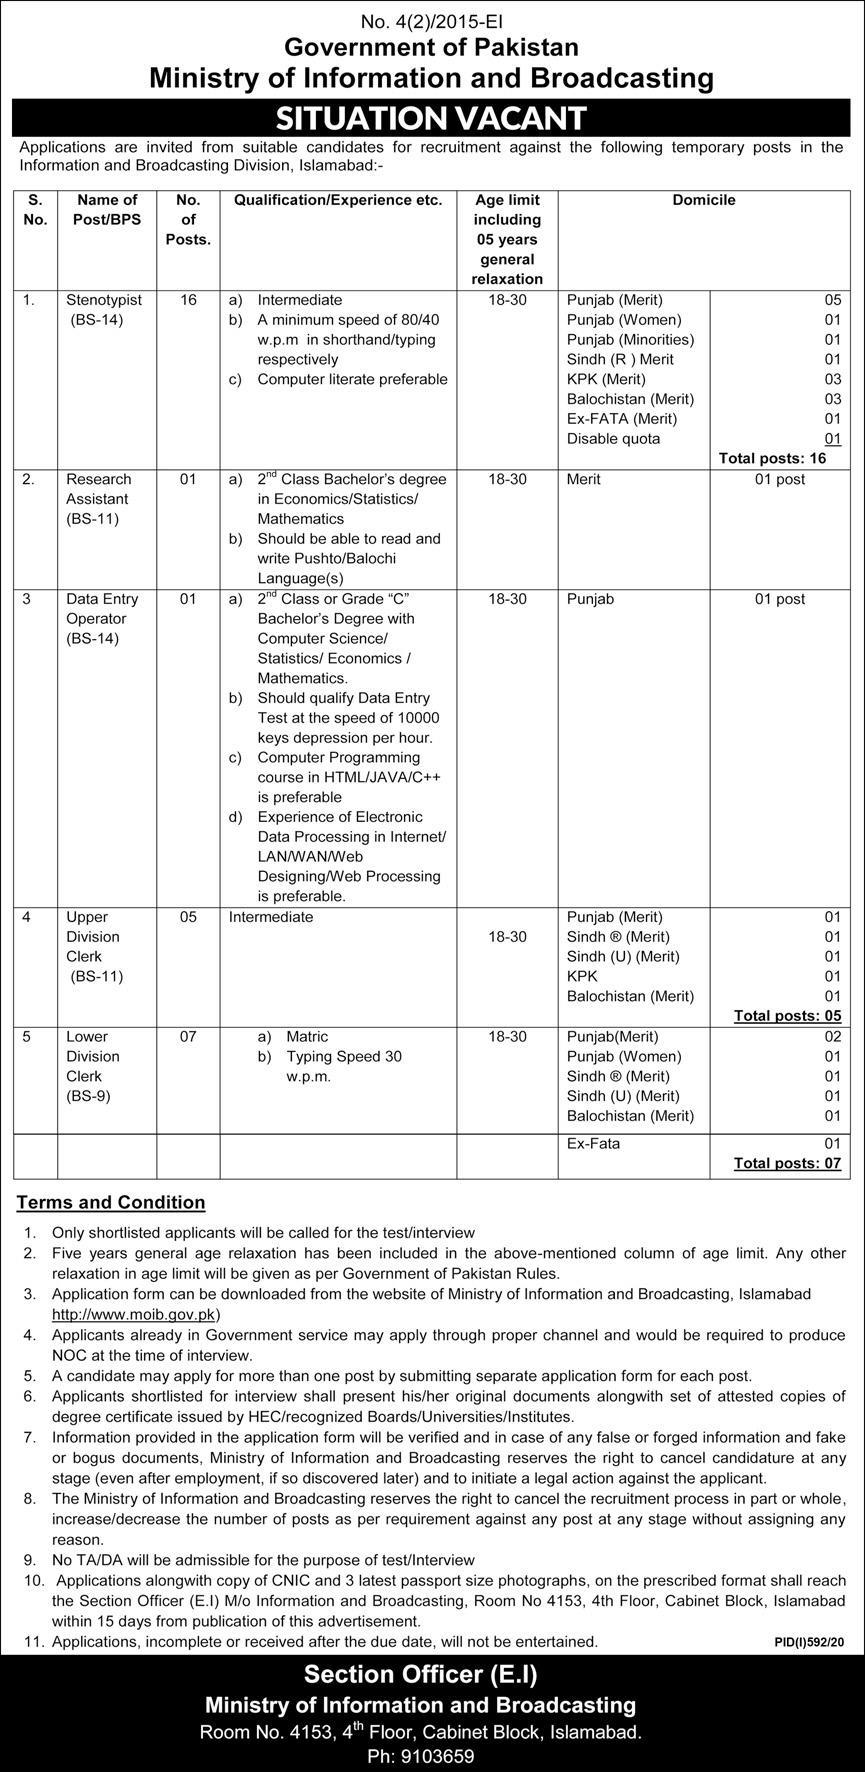 Government of Pakistan Jobs in Islamabad 2020